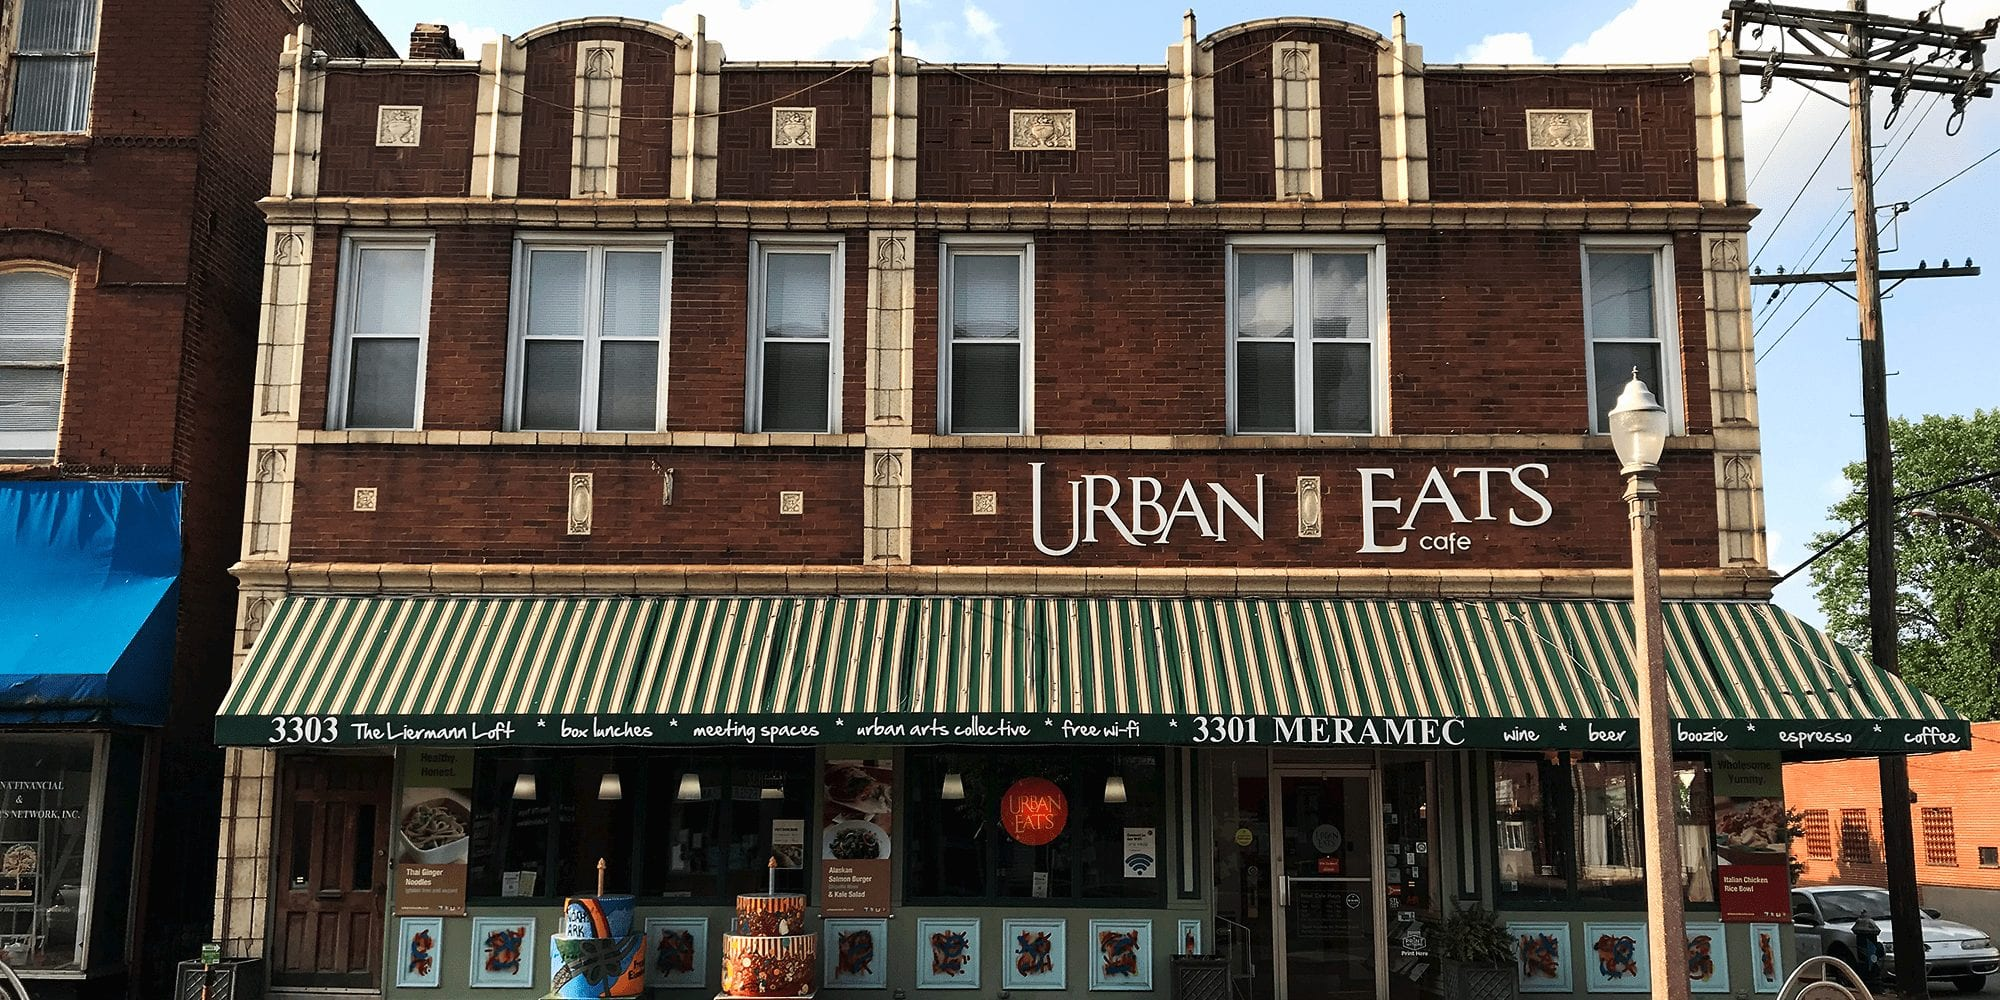 Urban Eats Café at 3301 Meramec in Dutchtown.